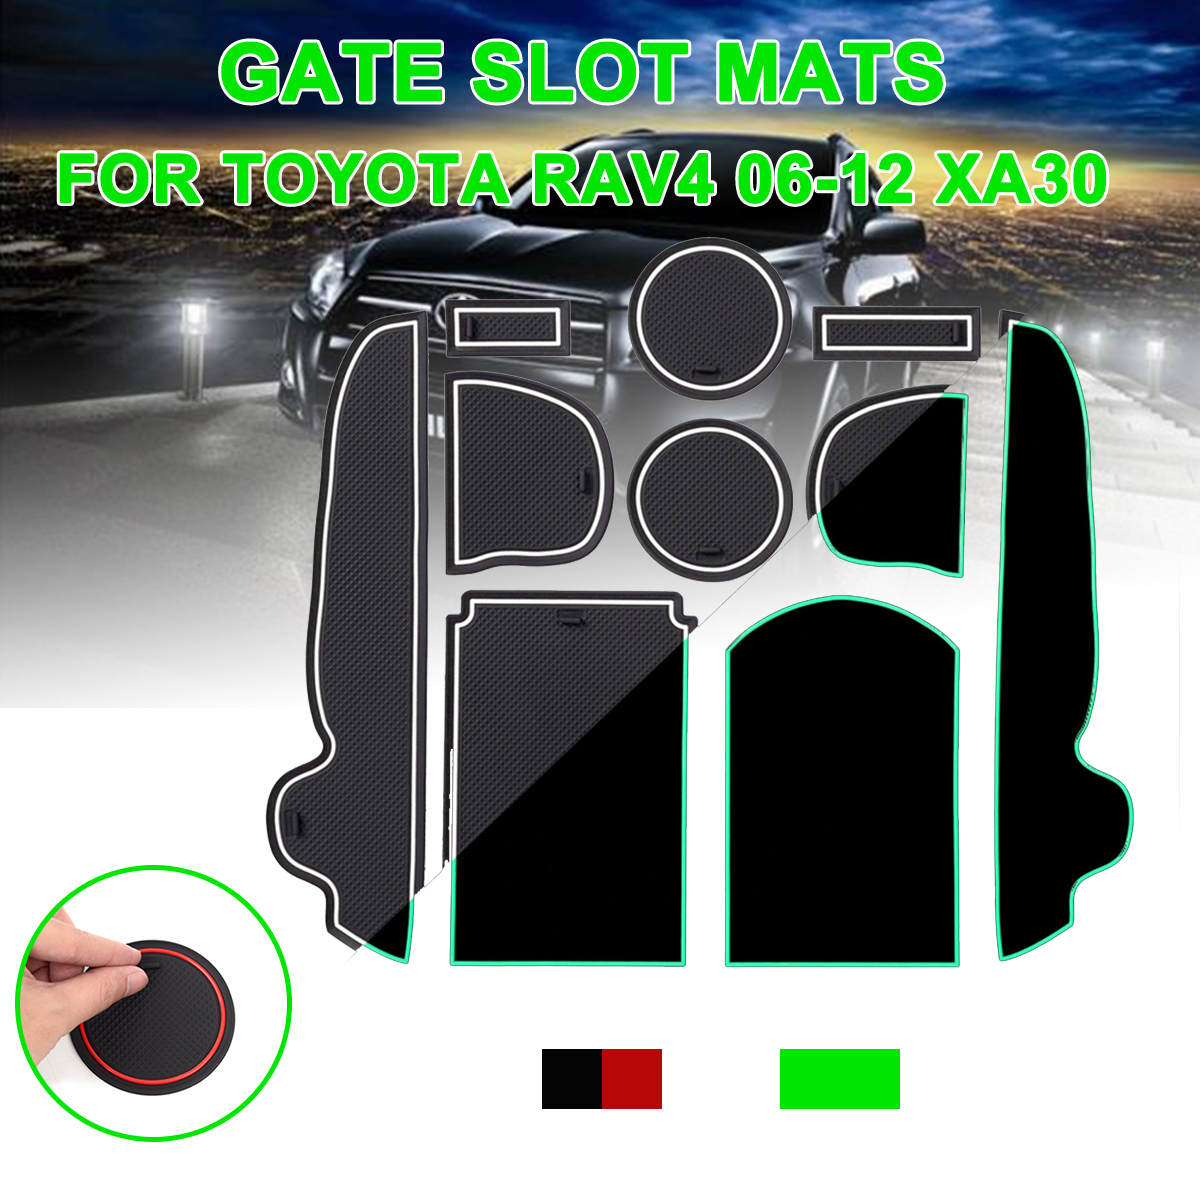 For Toyota RAV4 2006-2012 xa30 Anti-Slip Gate Slot Mat Rubber Coaster Accessories For <font><b>RAV</b></font> <font><b>4</b></font> 2006 2007 2008 2009 2010 <font><b>2011</b></font> 2012 image